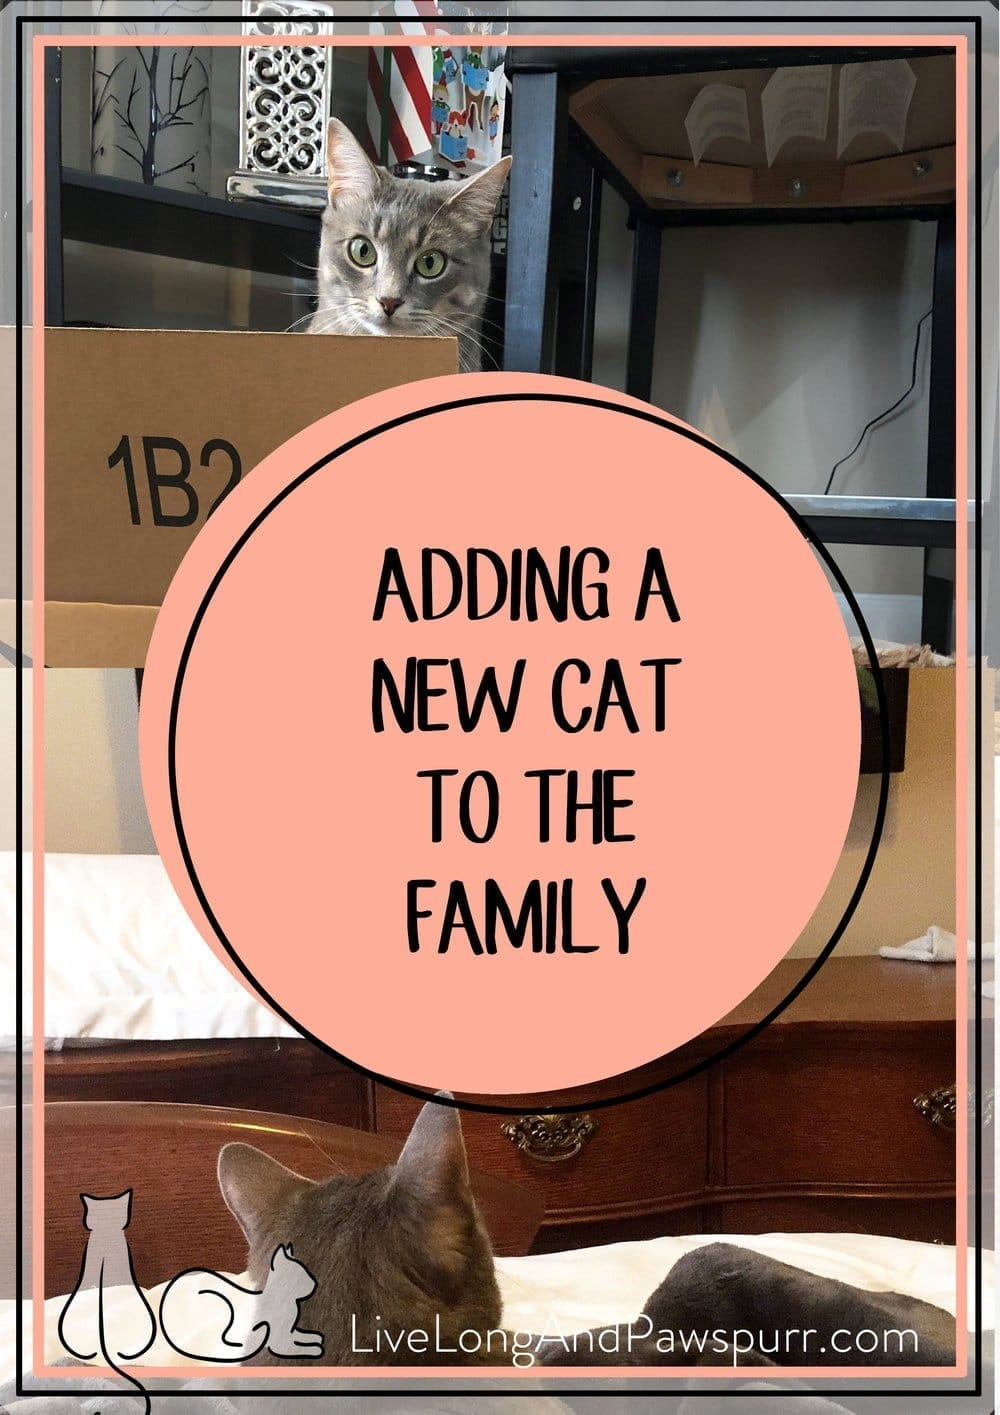 Adding a Cat to the family